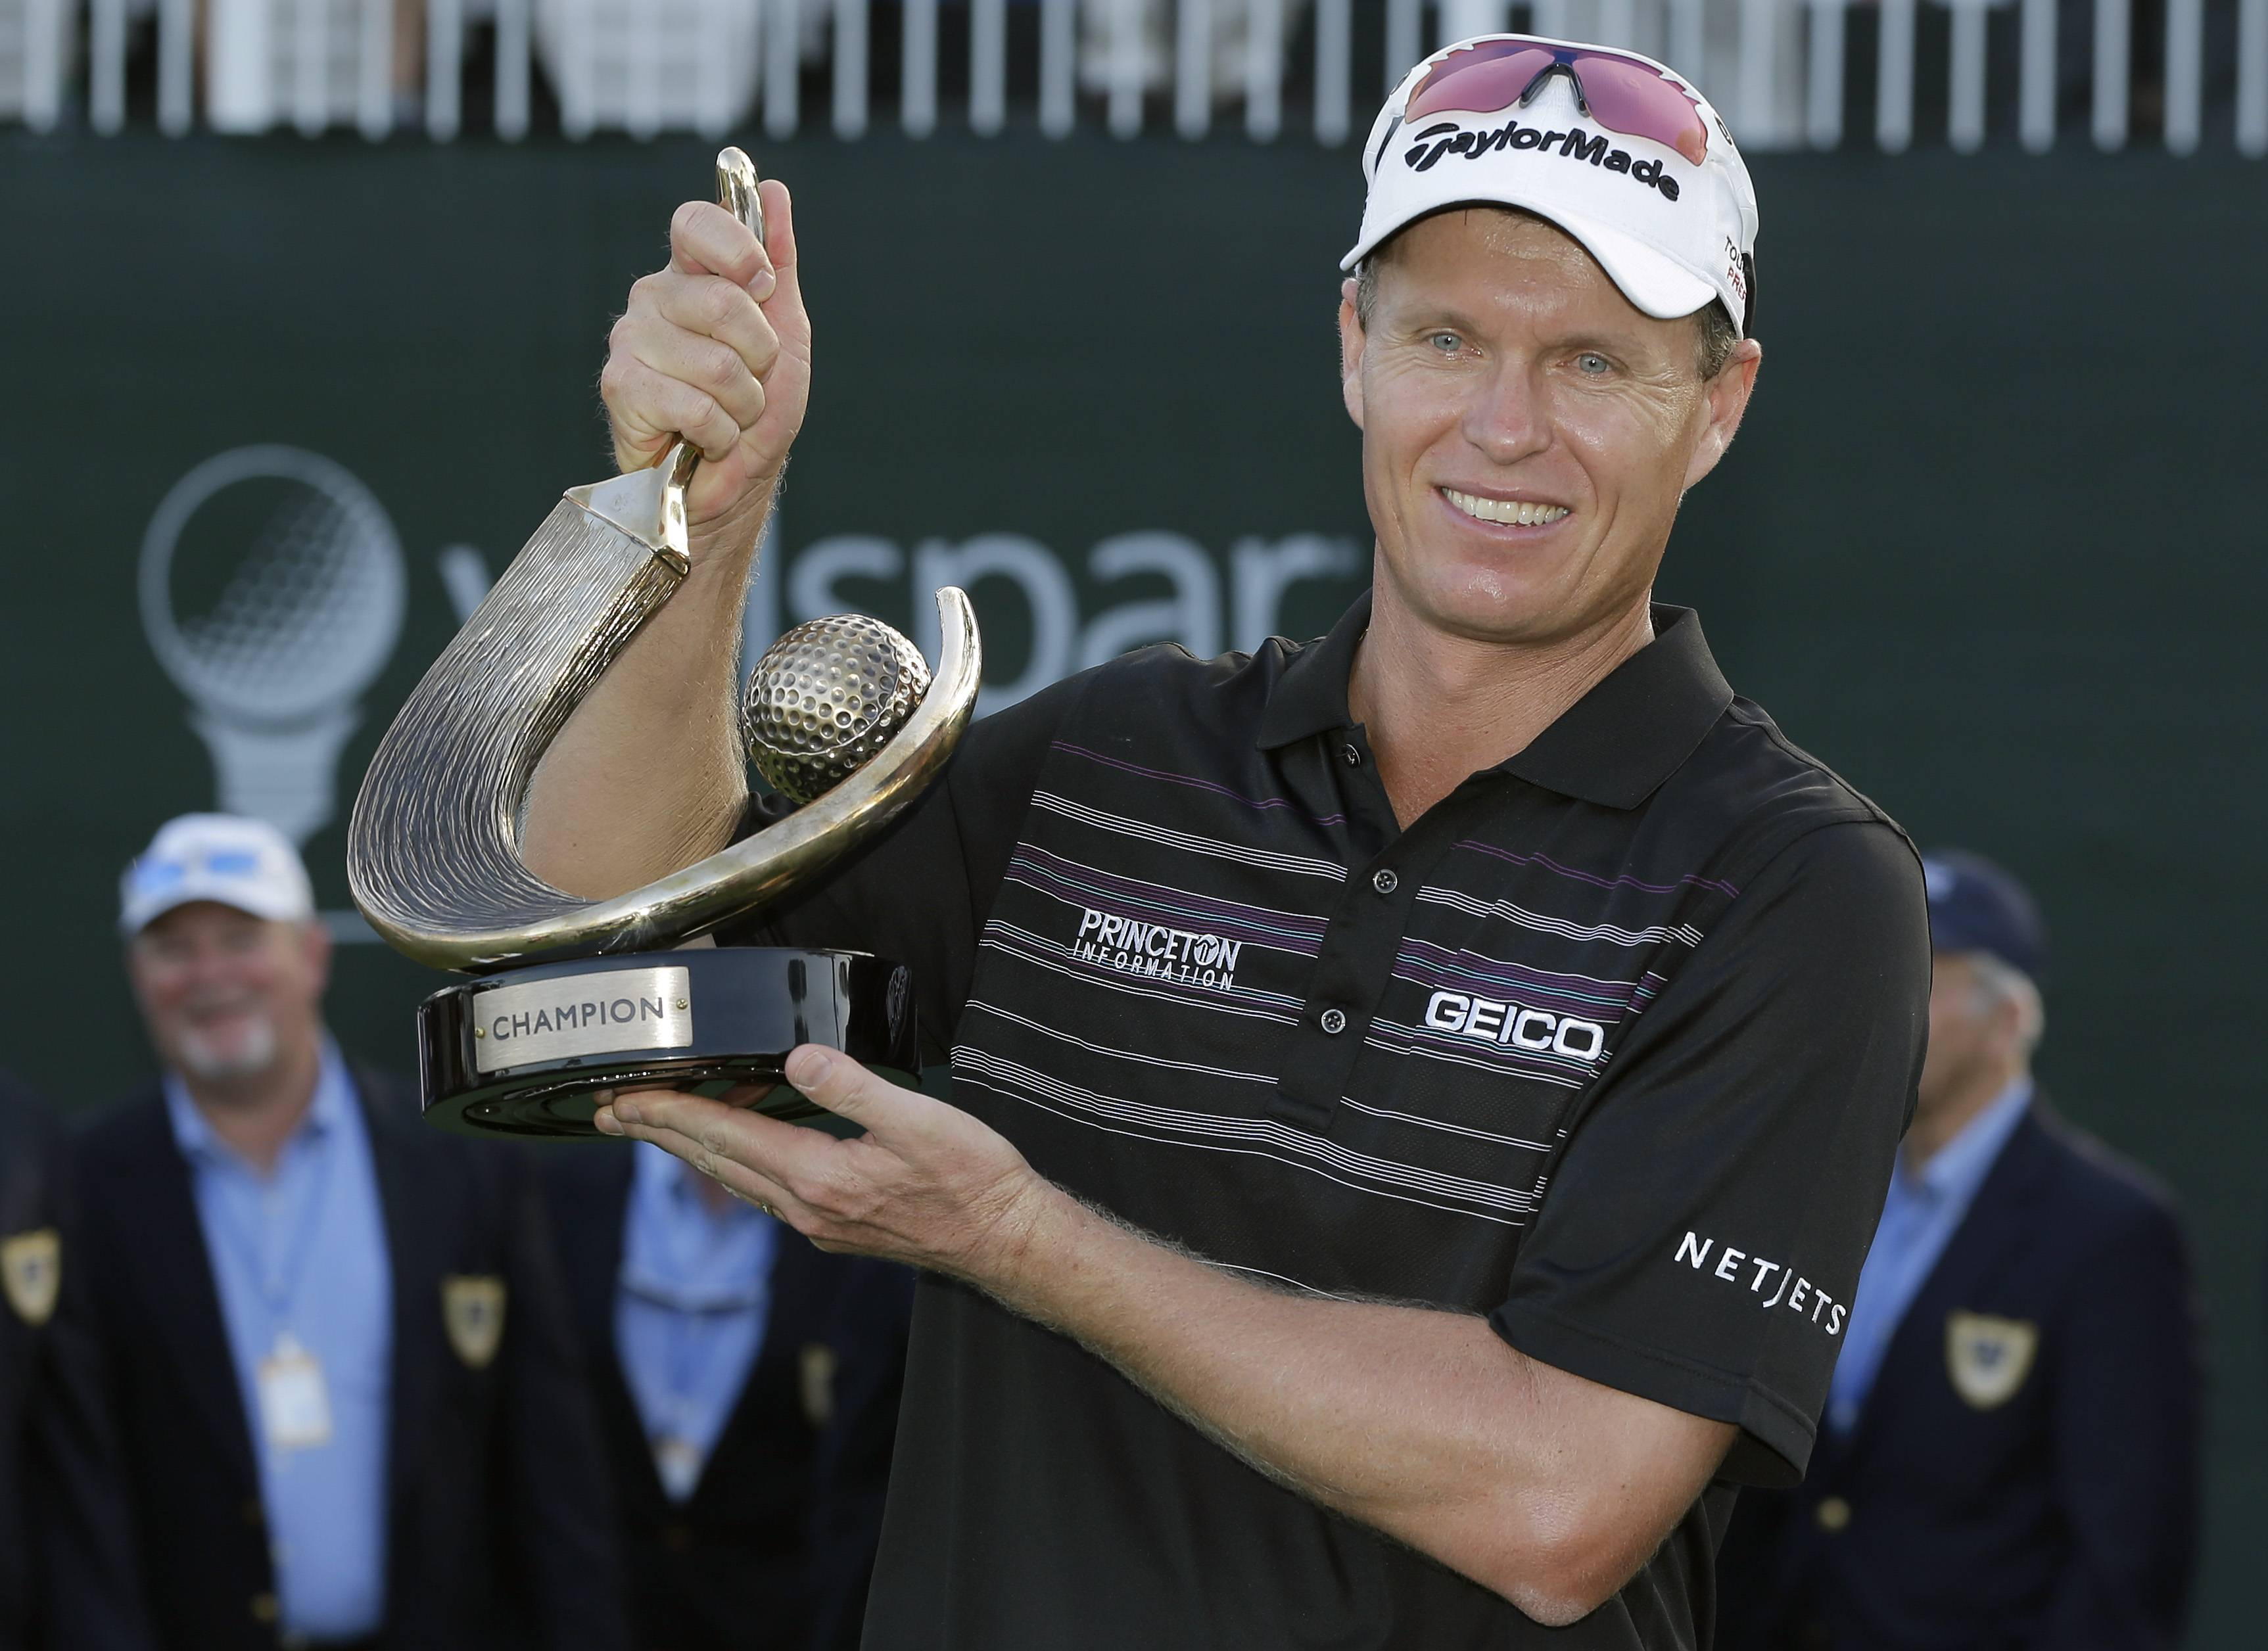 John Senden, of Australia, holds up the trophy after winning the Valspar Championship golf tournament at Innisbrook, Sunday, March 16, 2014, in Palm Harbor, Fla.